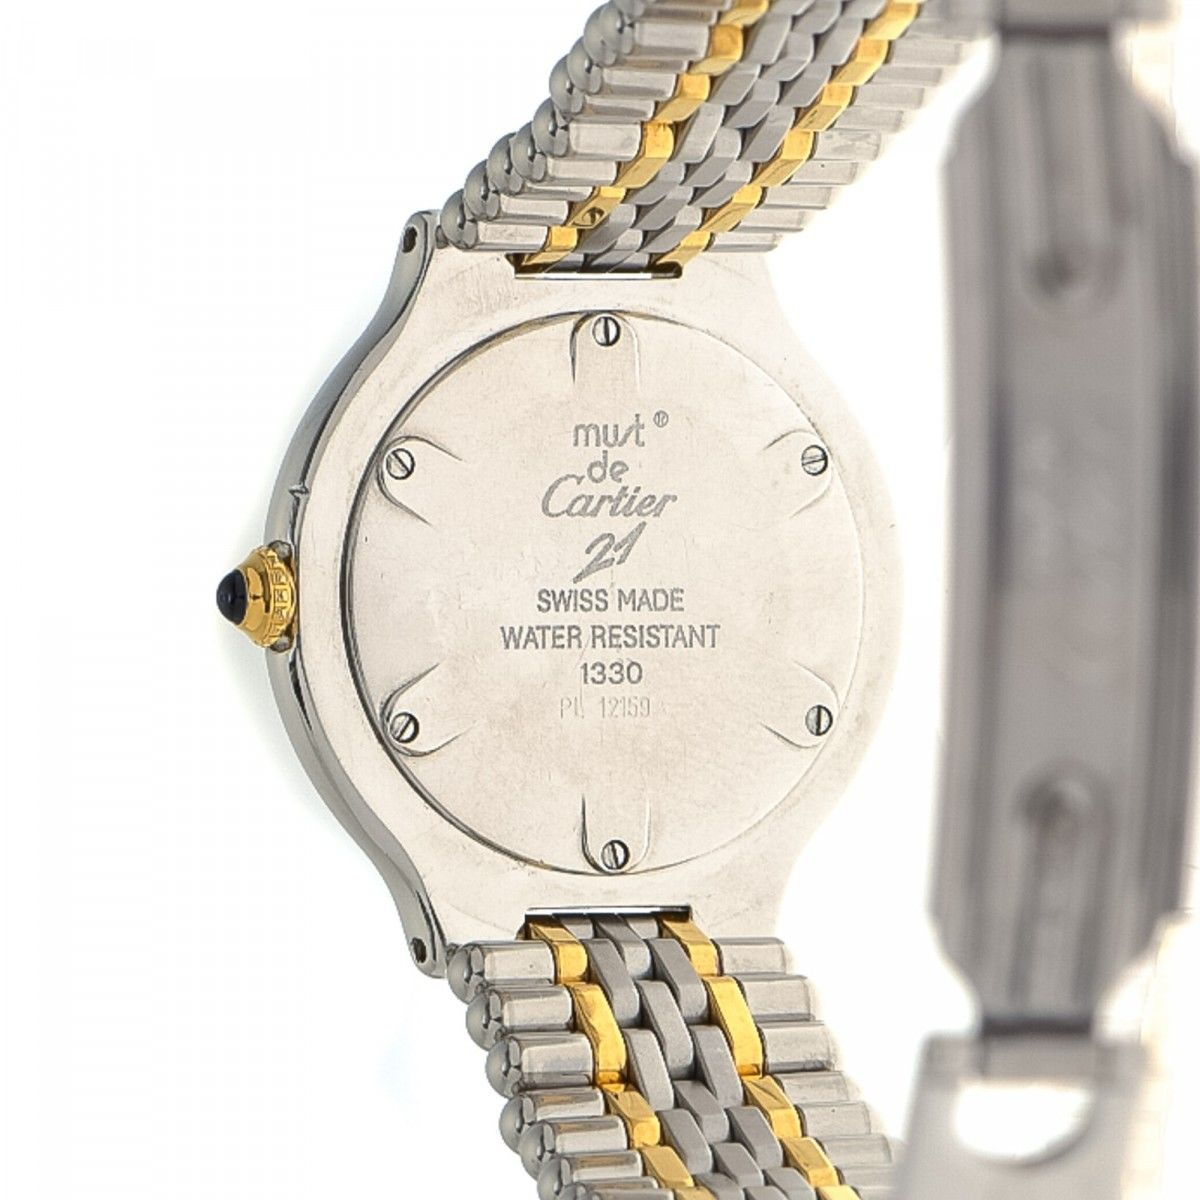 d2982a3eef10 Cartier Must de Cartier 21 25mm 1330 Stainless Steel - LXRandCo ...